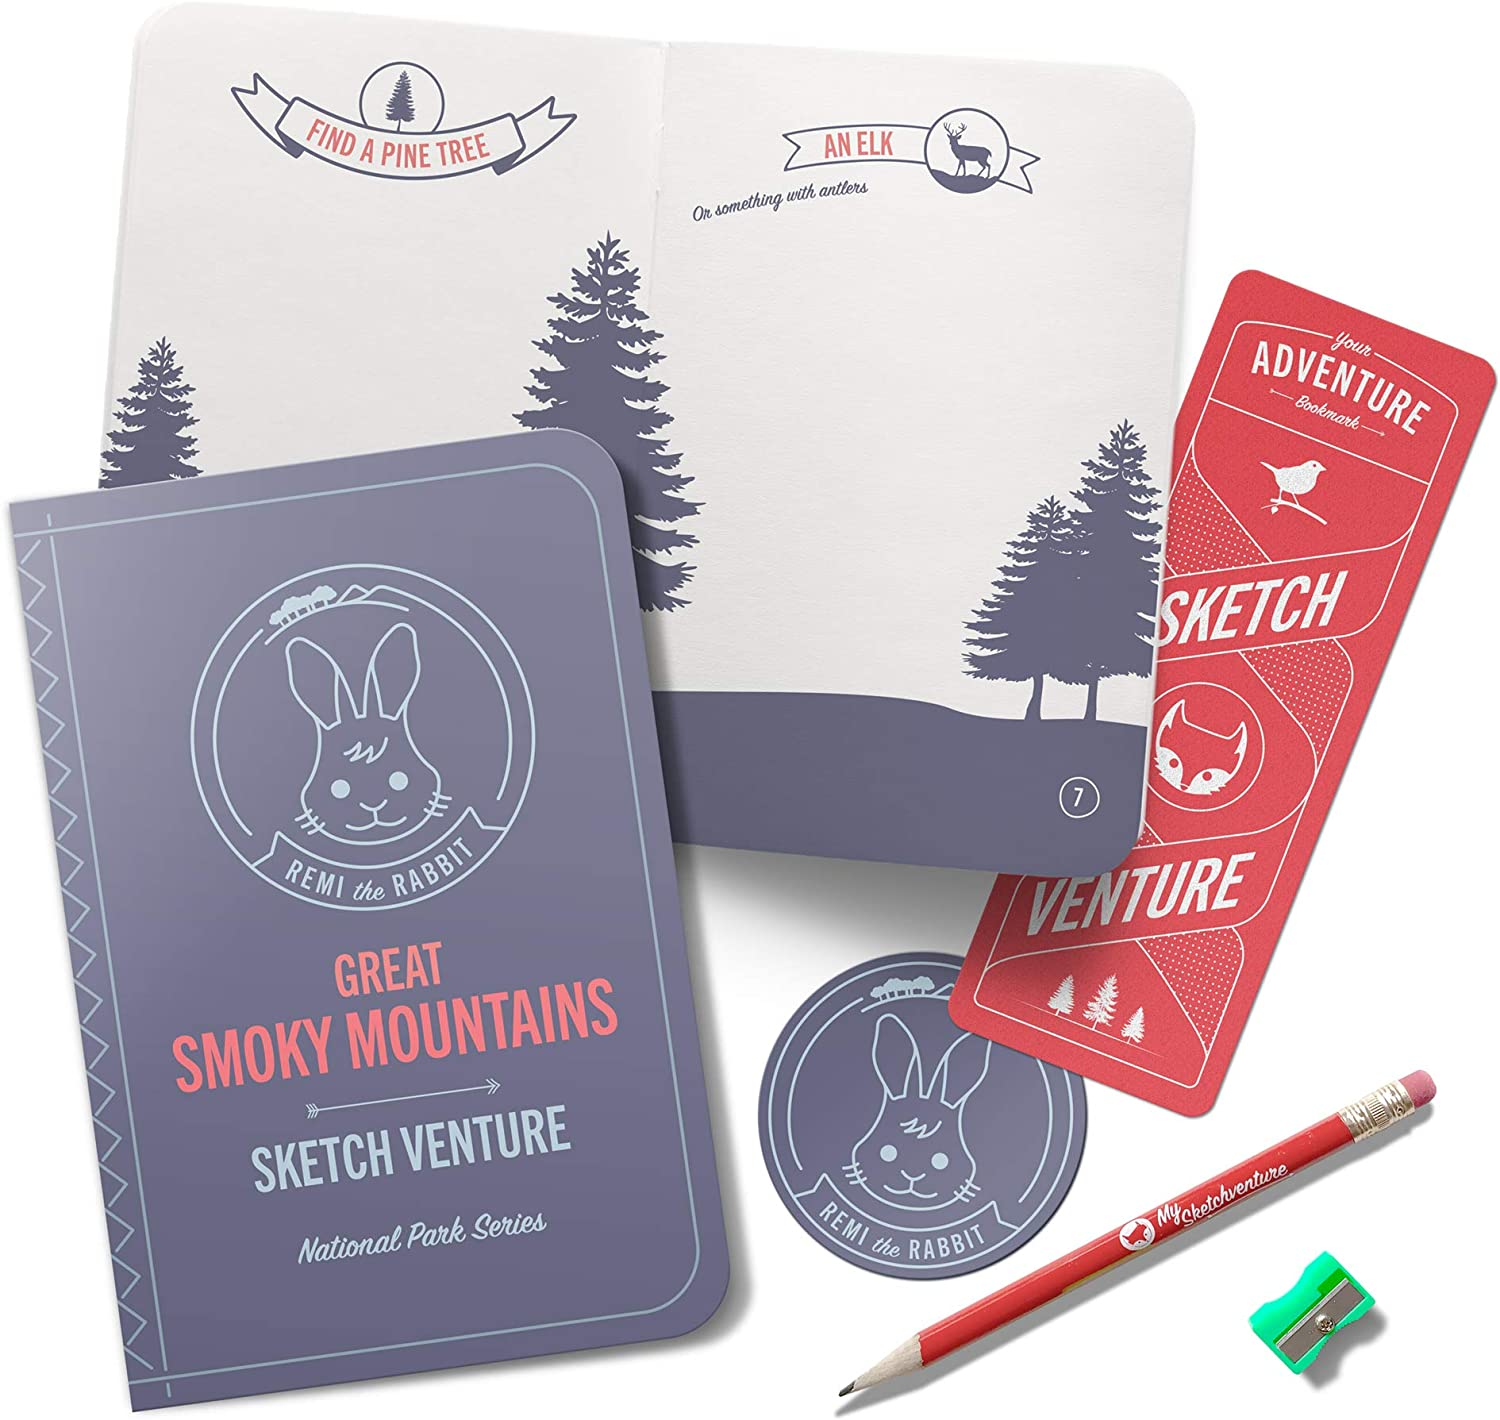 Stamp Passpor Drawing Activities My Sketchventure Great Smoky Mountains Book Kit Great Smoky Mountains National Park Kids Activity Book Kit Entertain Children During Road Trip